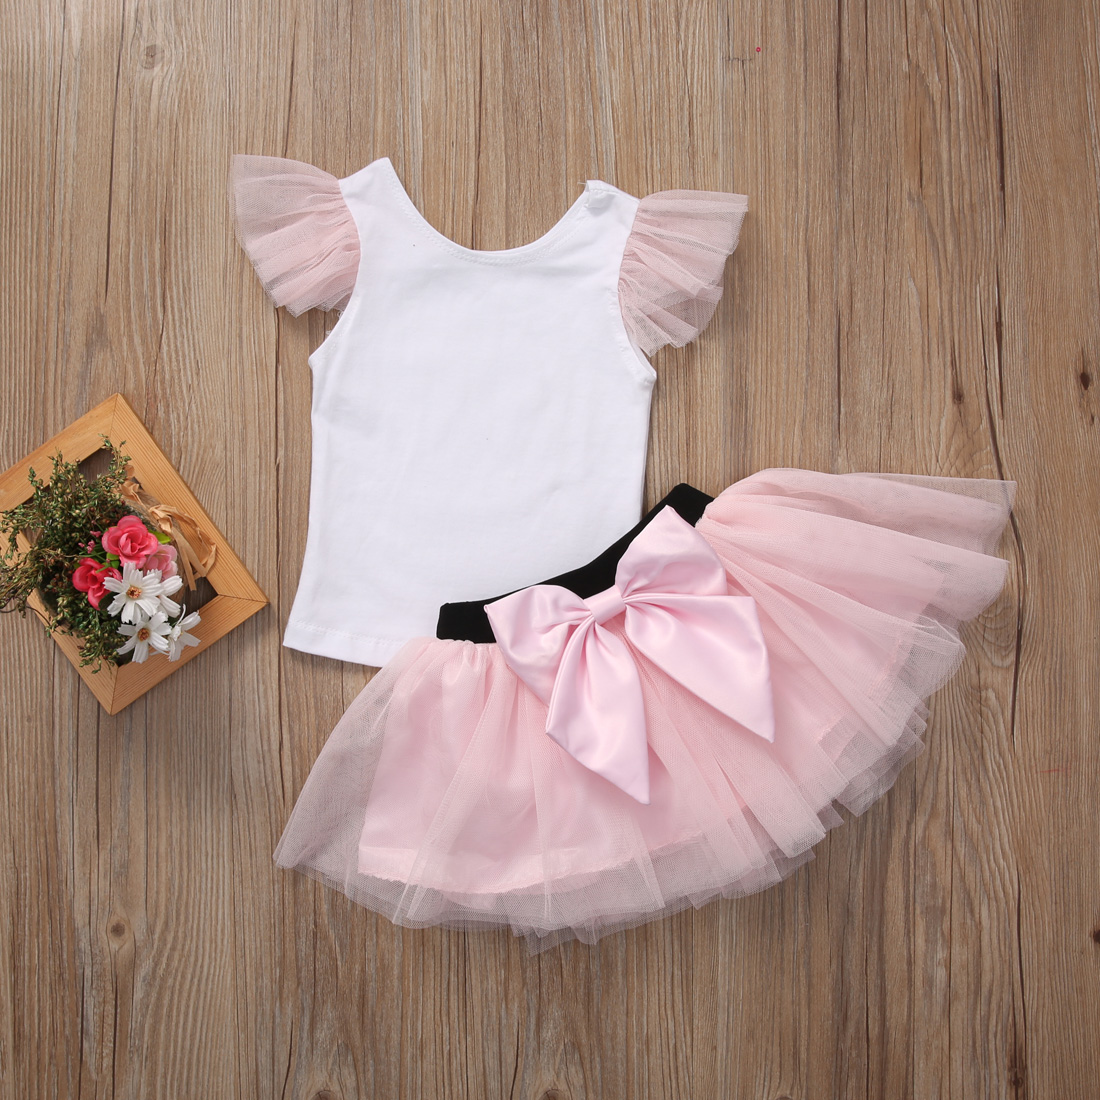 2PCS/Set Mother Daughter Kids Girls Summer Outfits T-shirt+Skirt Tulle Dress Clothes Set 7 50 1089872